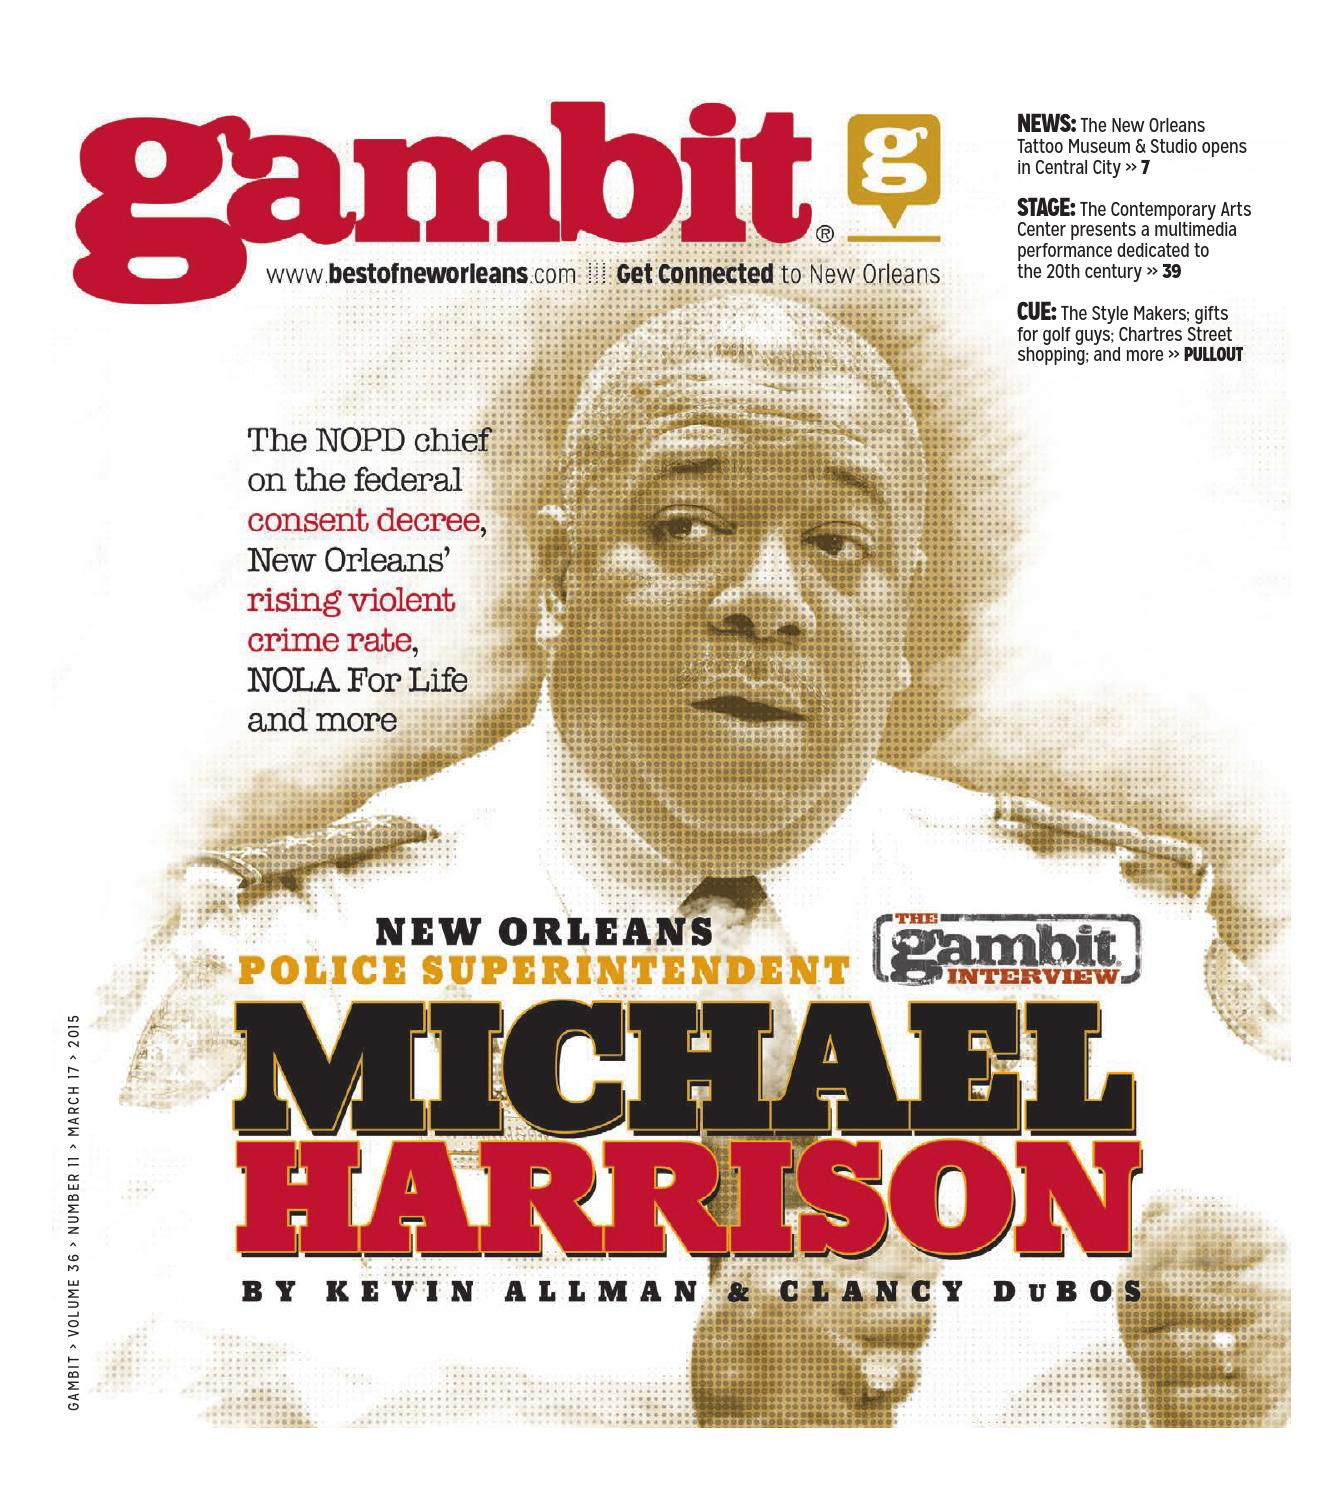 Nike jerseys for sale - Gambit New Orleans March 17, 2015 by Gambit New Orleans - issuu